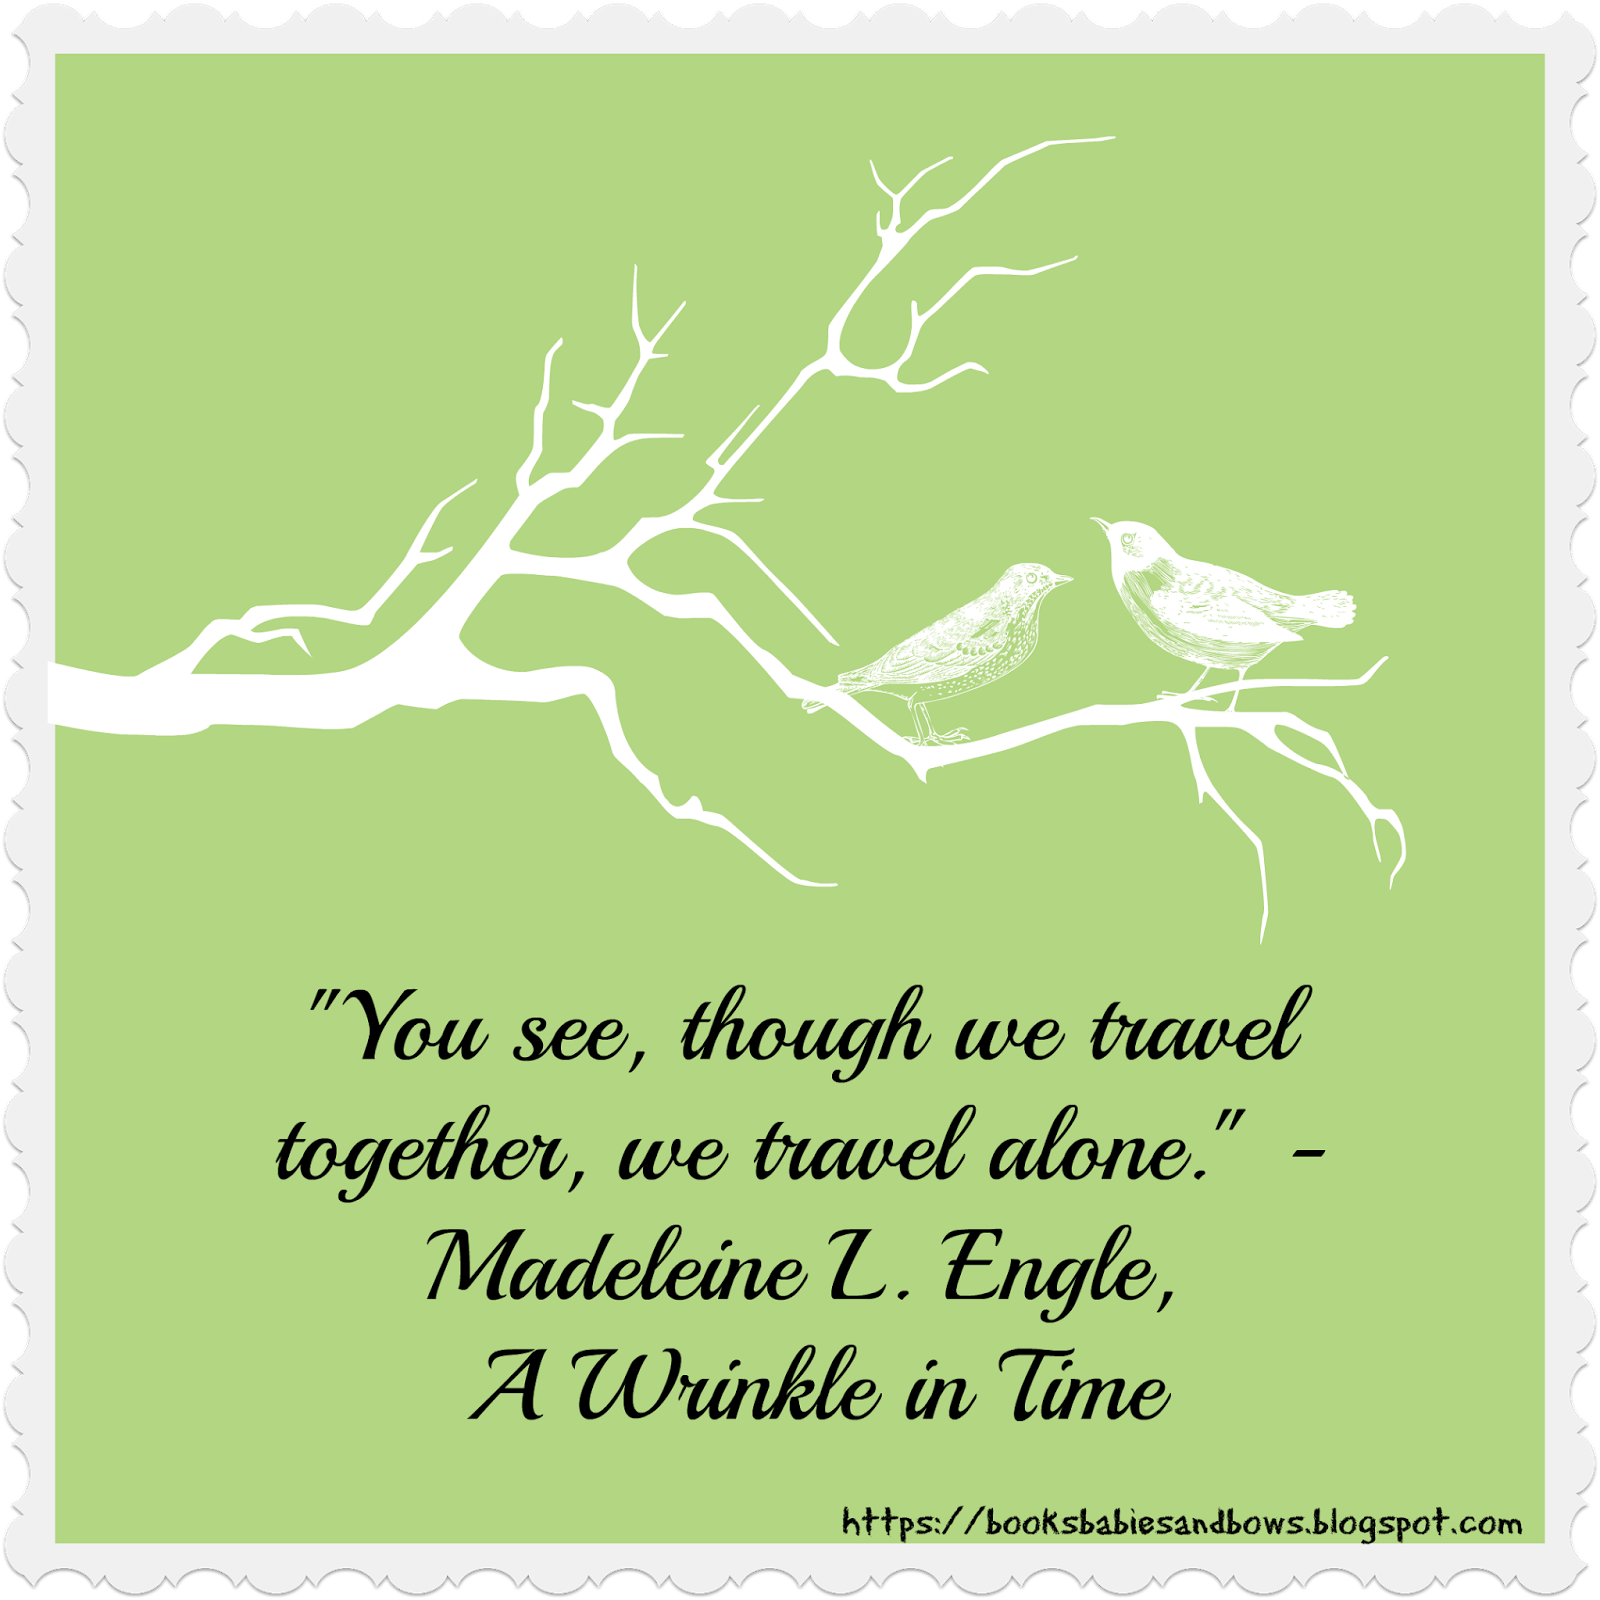 Somewhere In Time Quotes: Books, Babies, And Bows: Just A Wrinkle In Time